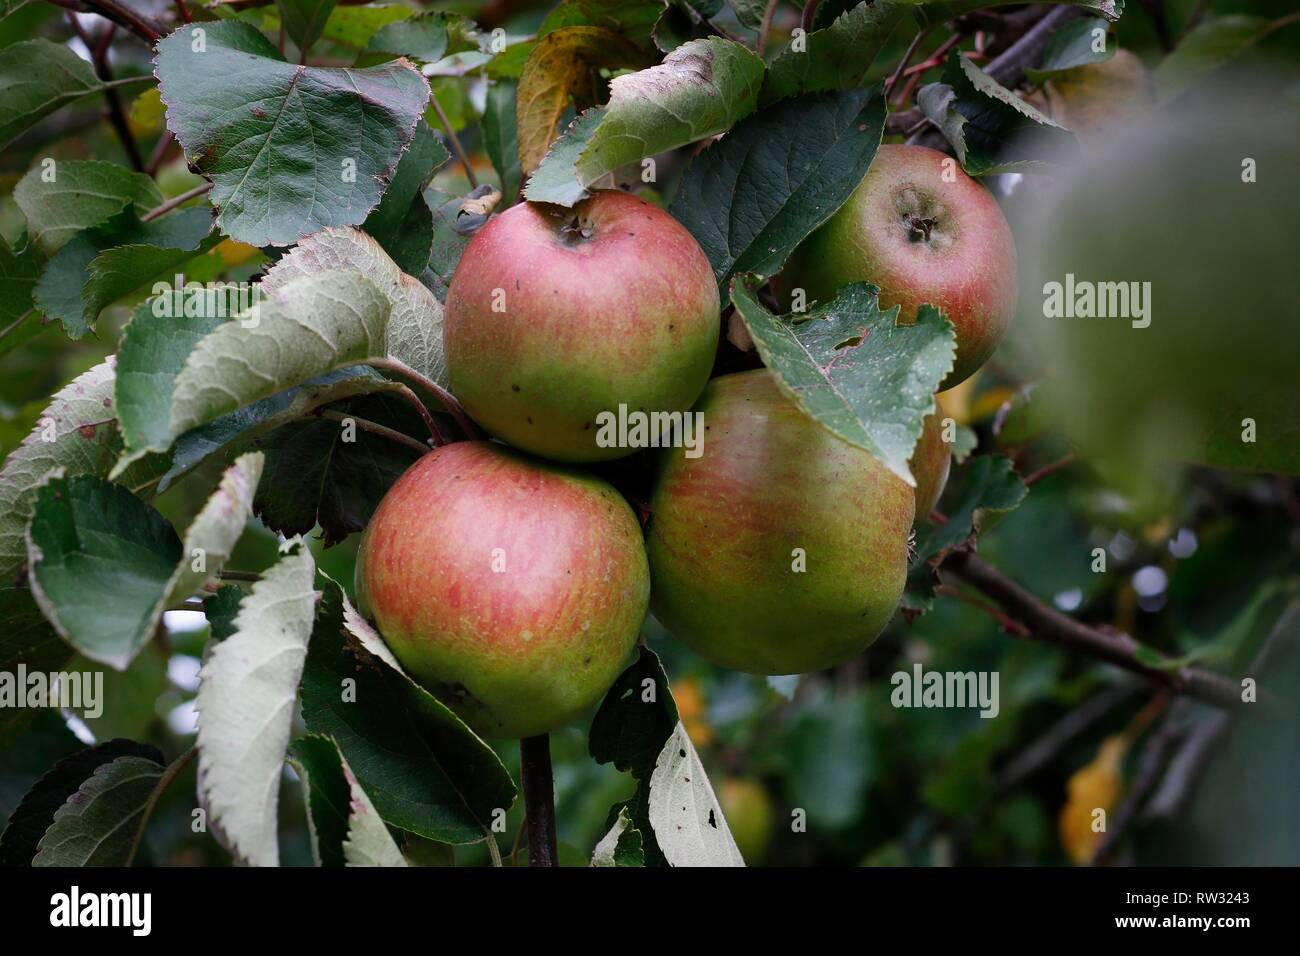 Hard Knock apples, originally from Oxenton, near Cheltenham, Gloucestershire, growing in Charles Martell's home orchard. - Stock Image